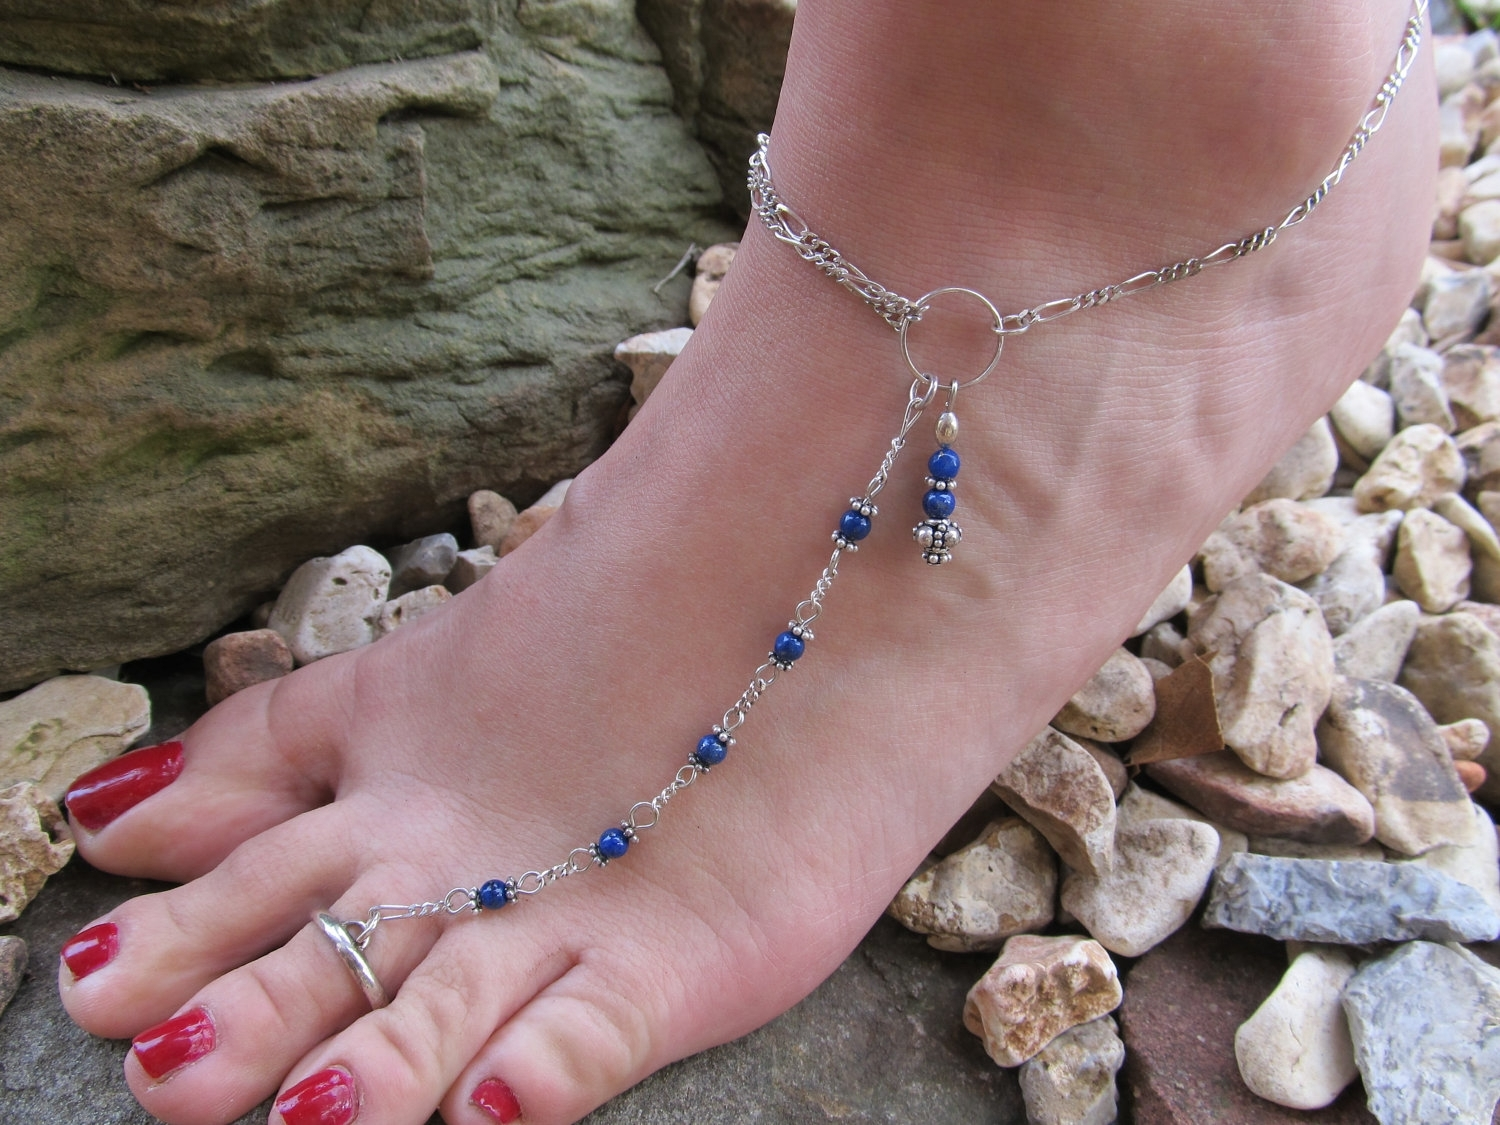 Anklet Deep Blue Lapis Sterling Silver Ankle Bracelet Toe Ring With Newest Wedding Toe Rings (View 5 of 15)